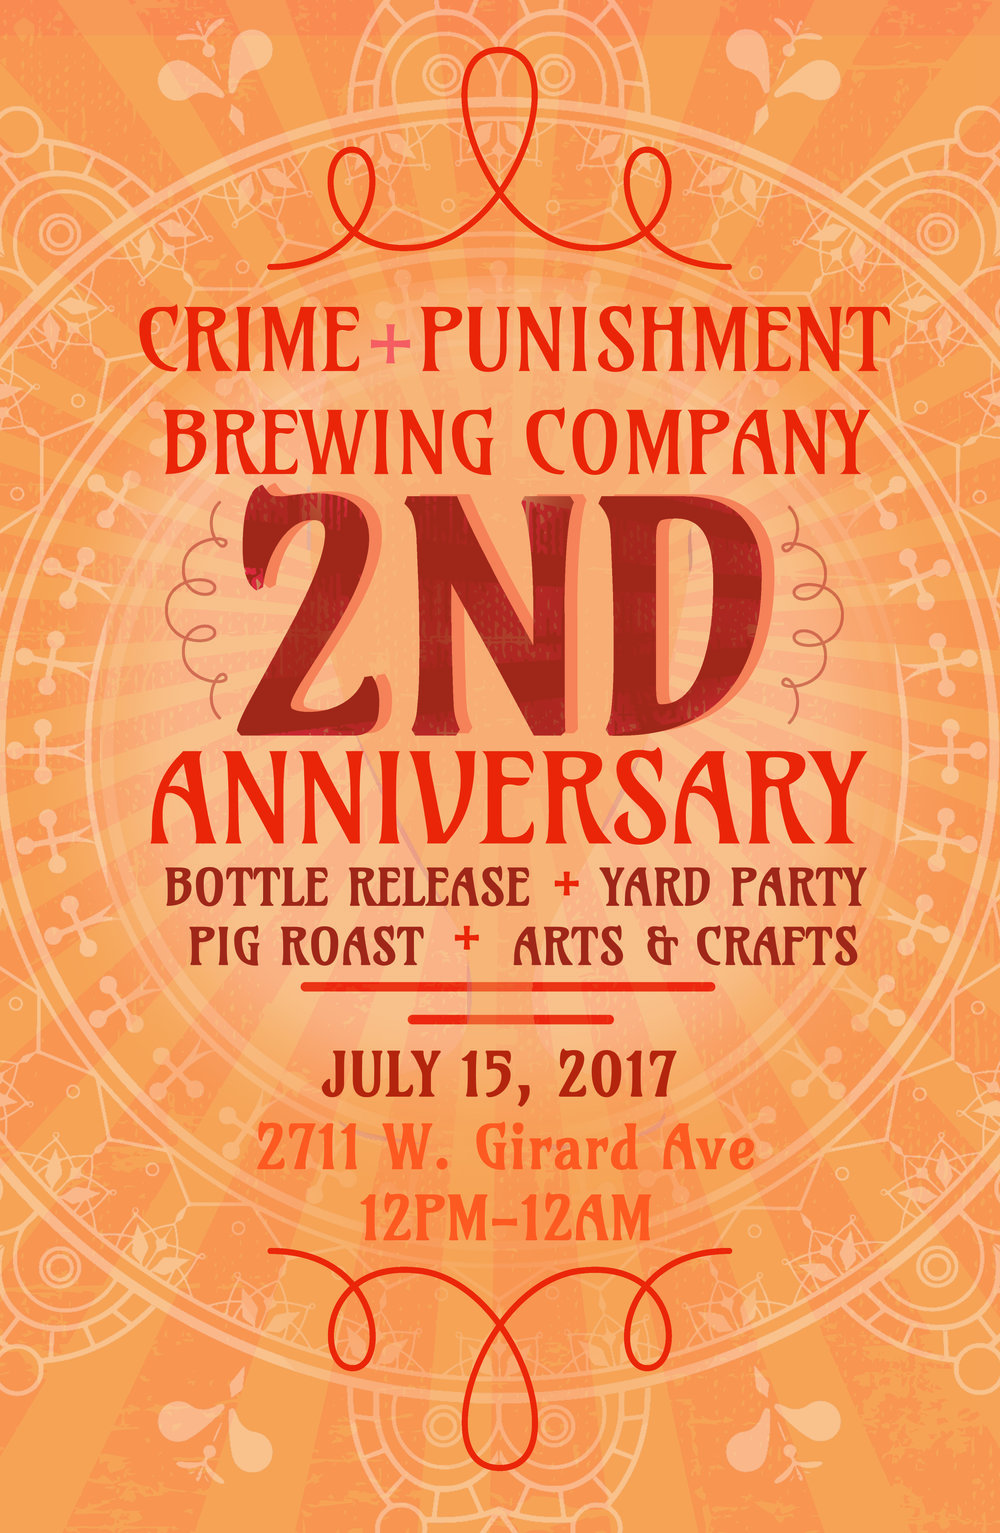 Crime and Punishment Brewing Co 2nd Anniversary